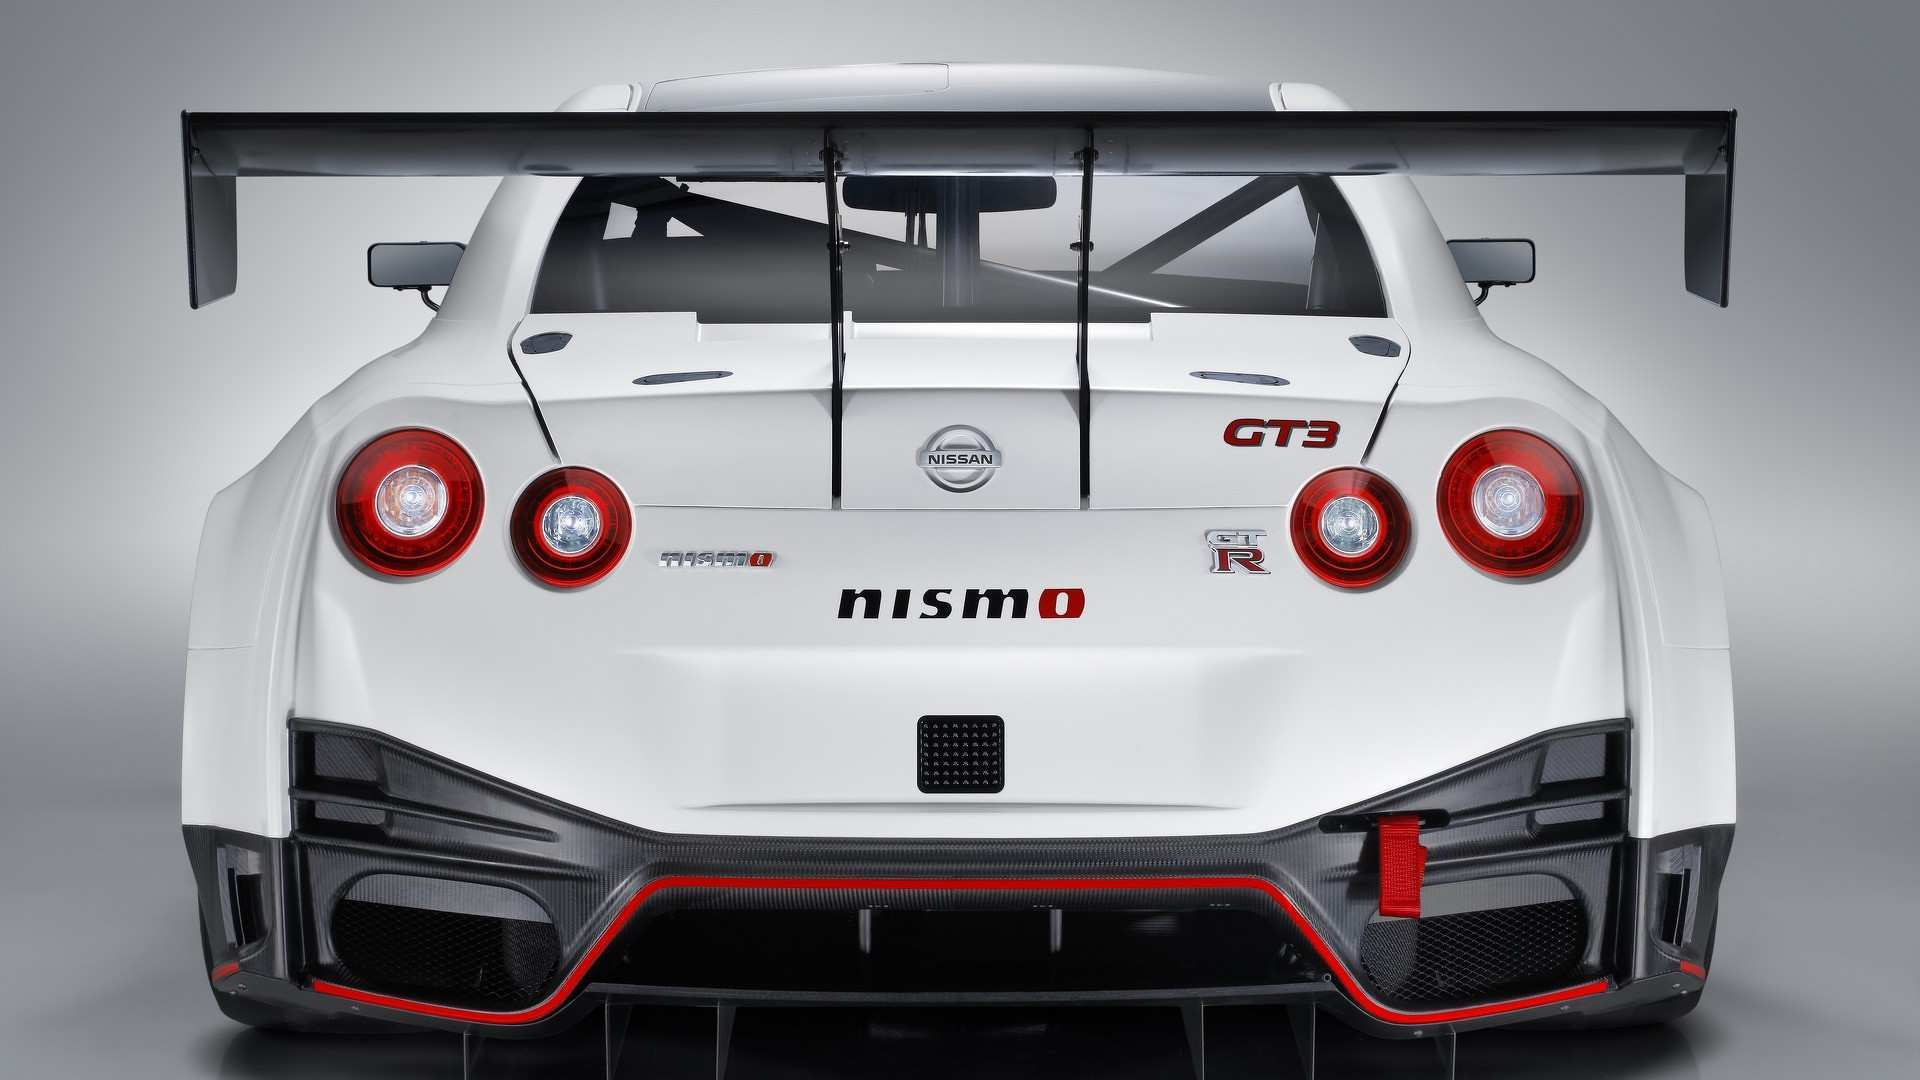 71 Concept of 2019 Nissan Gt R Nismo Gt3 Review for 2019 Nissan Gt R Nismo Gt3